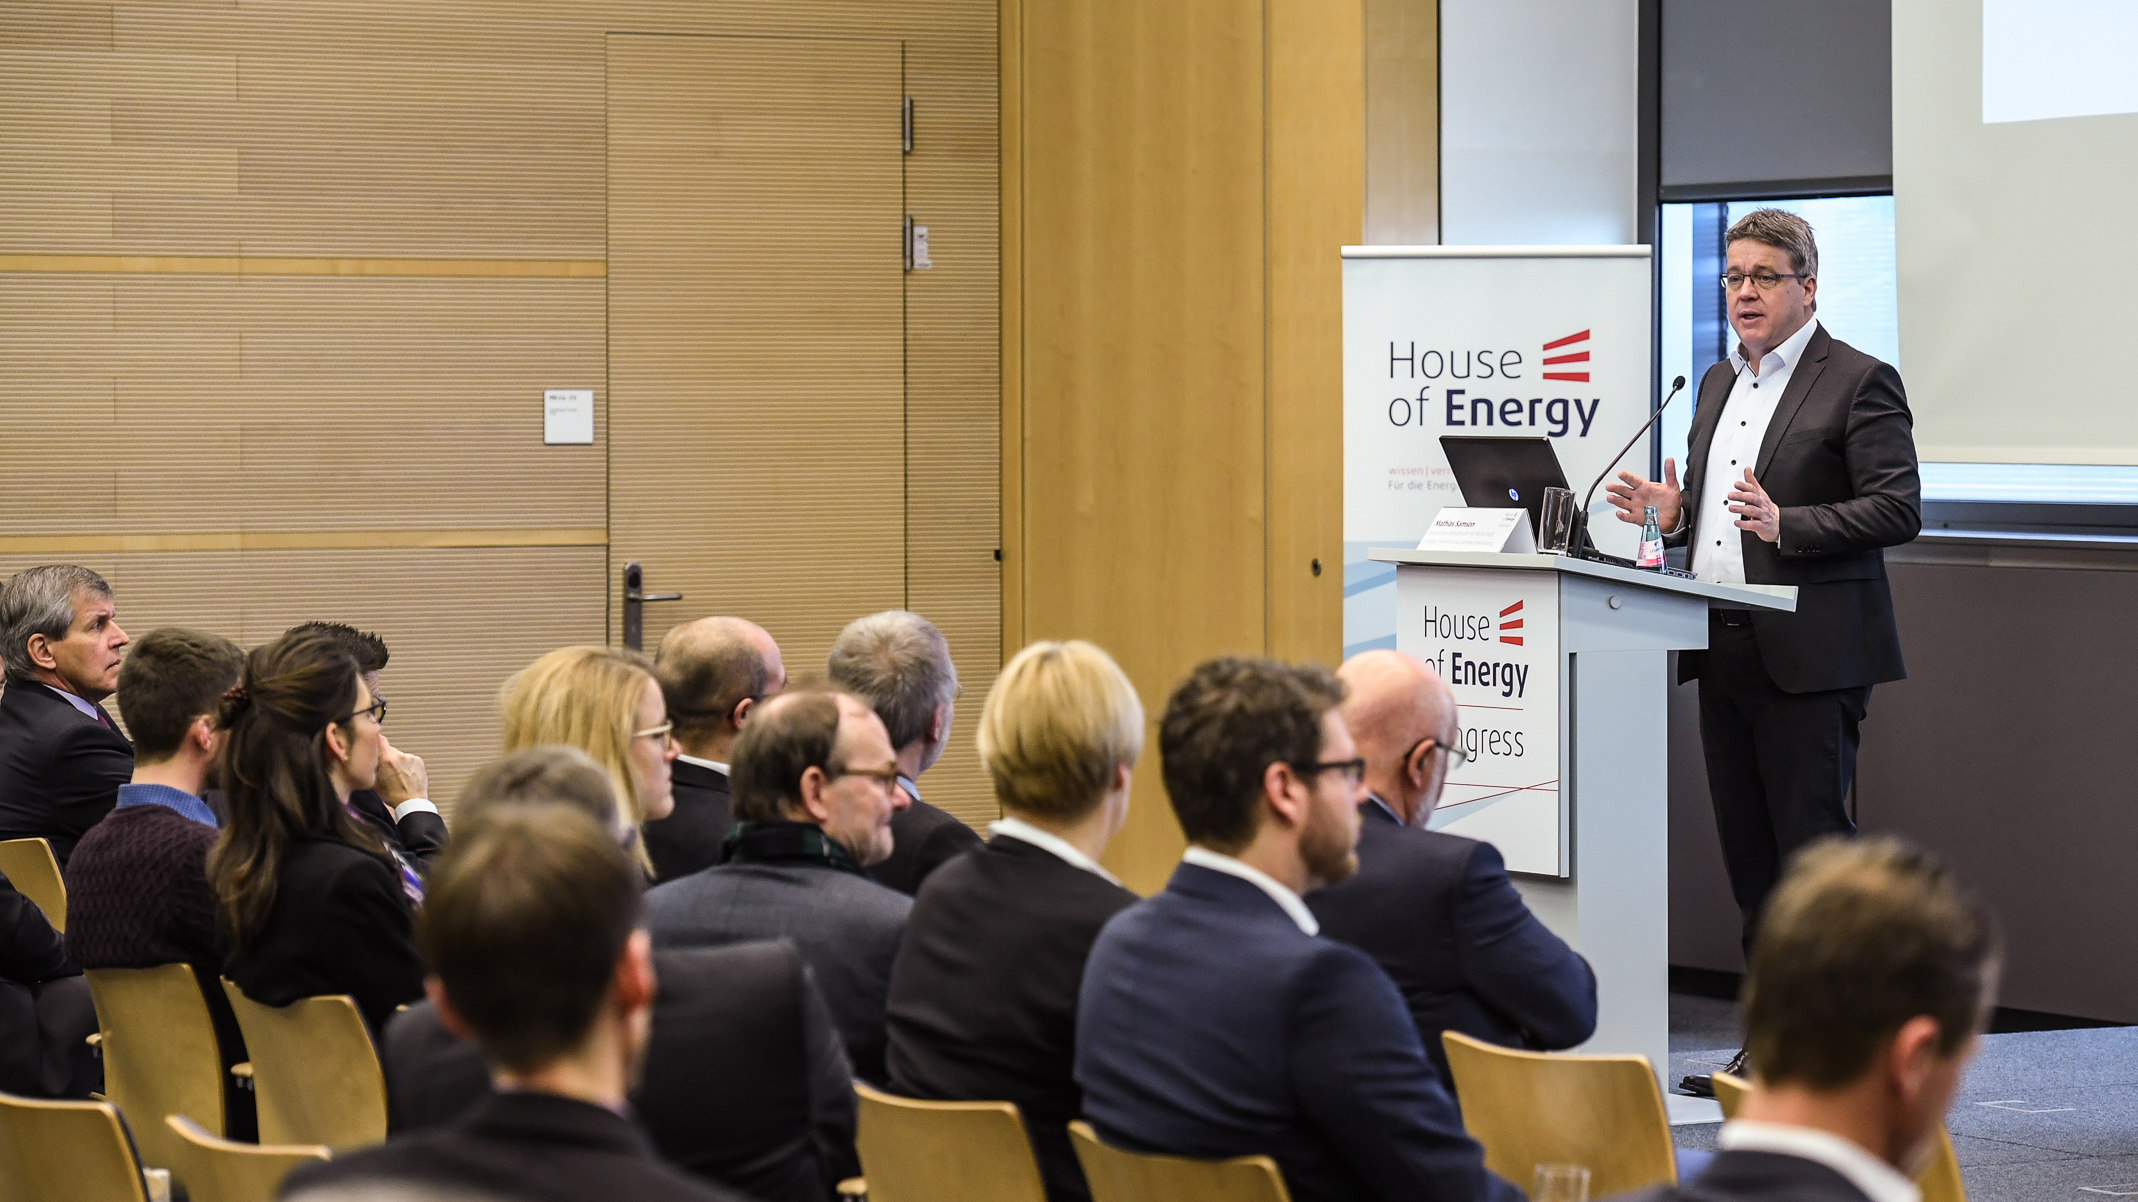 Vortrag beim House of Energy Kongress